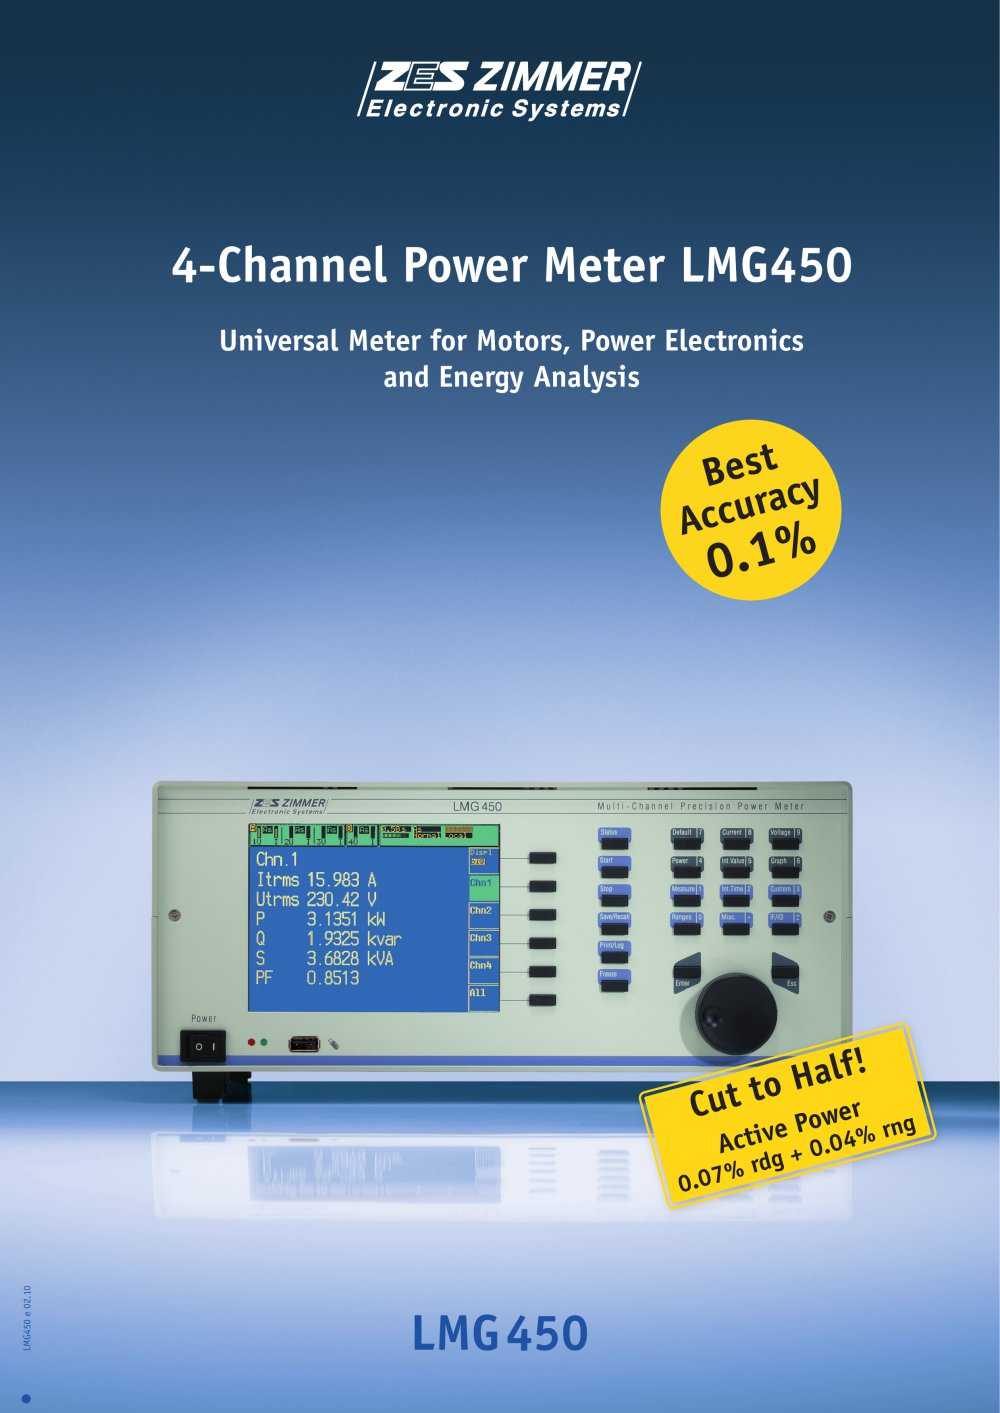 4 Channel Power Meter Lmg450 Zes Zimmer Electronic Systems Pdf Q 1 8 Pages